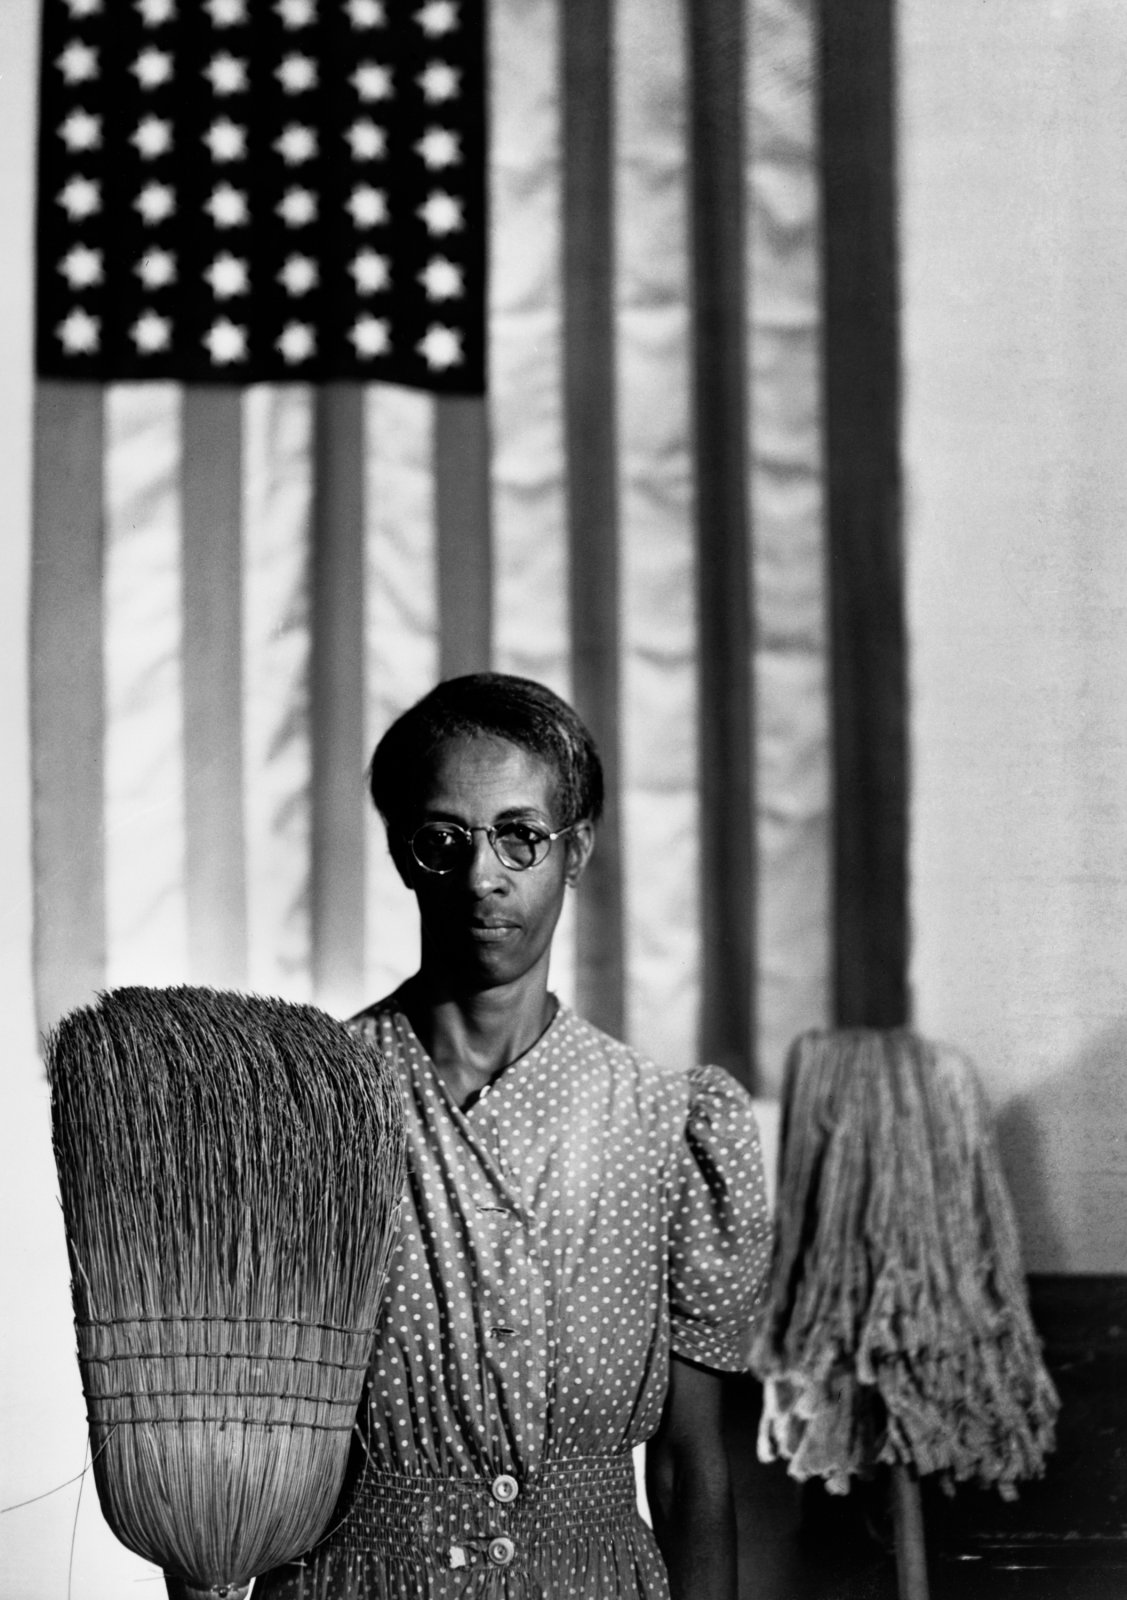 American Gothic, Washington, D.C., 1942 © Gordon Parks / Courtesy The Gordon Parks Foundation